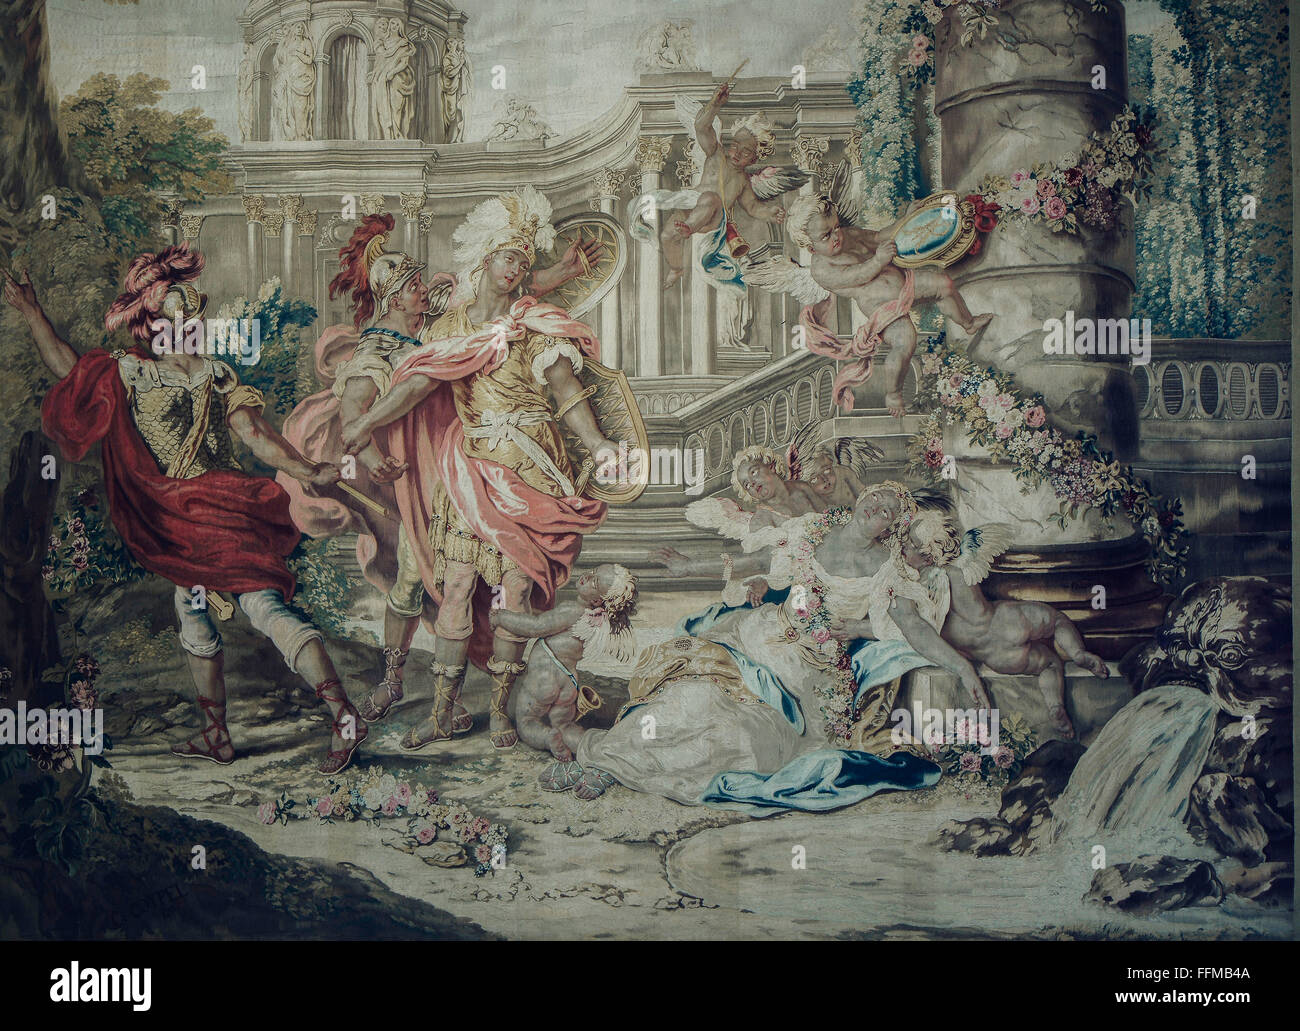 theatre / theater, opera, 'Armide' by Jean-Baptiste Lully, Armida fainting, tapestry, after design by Charles - Stock Image